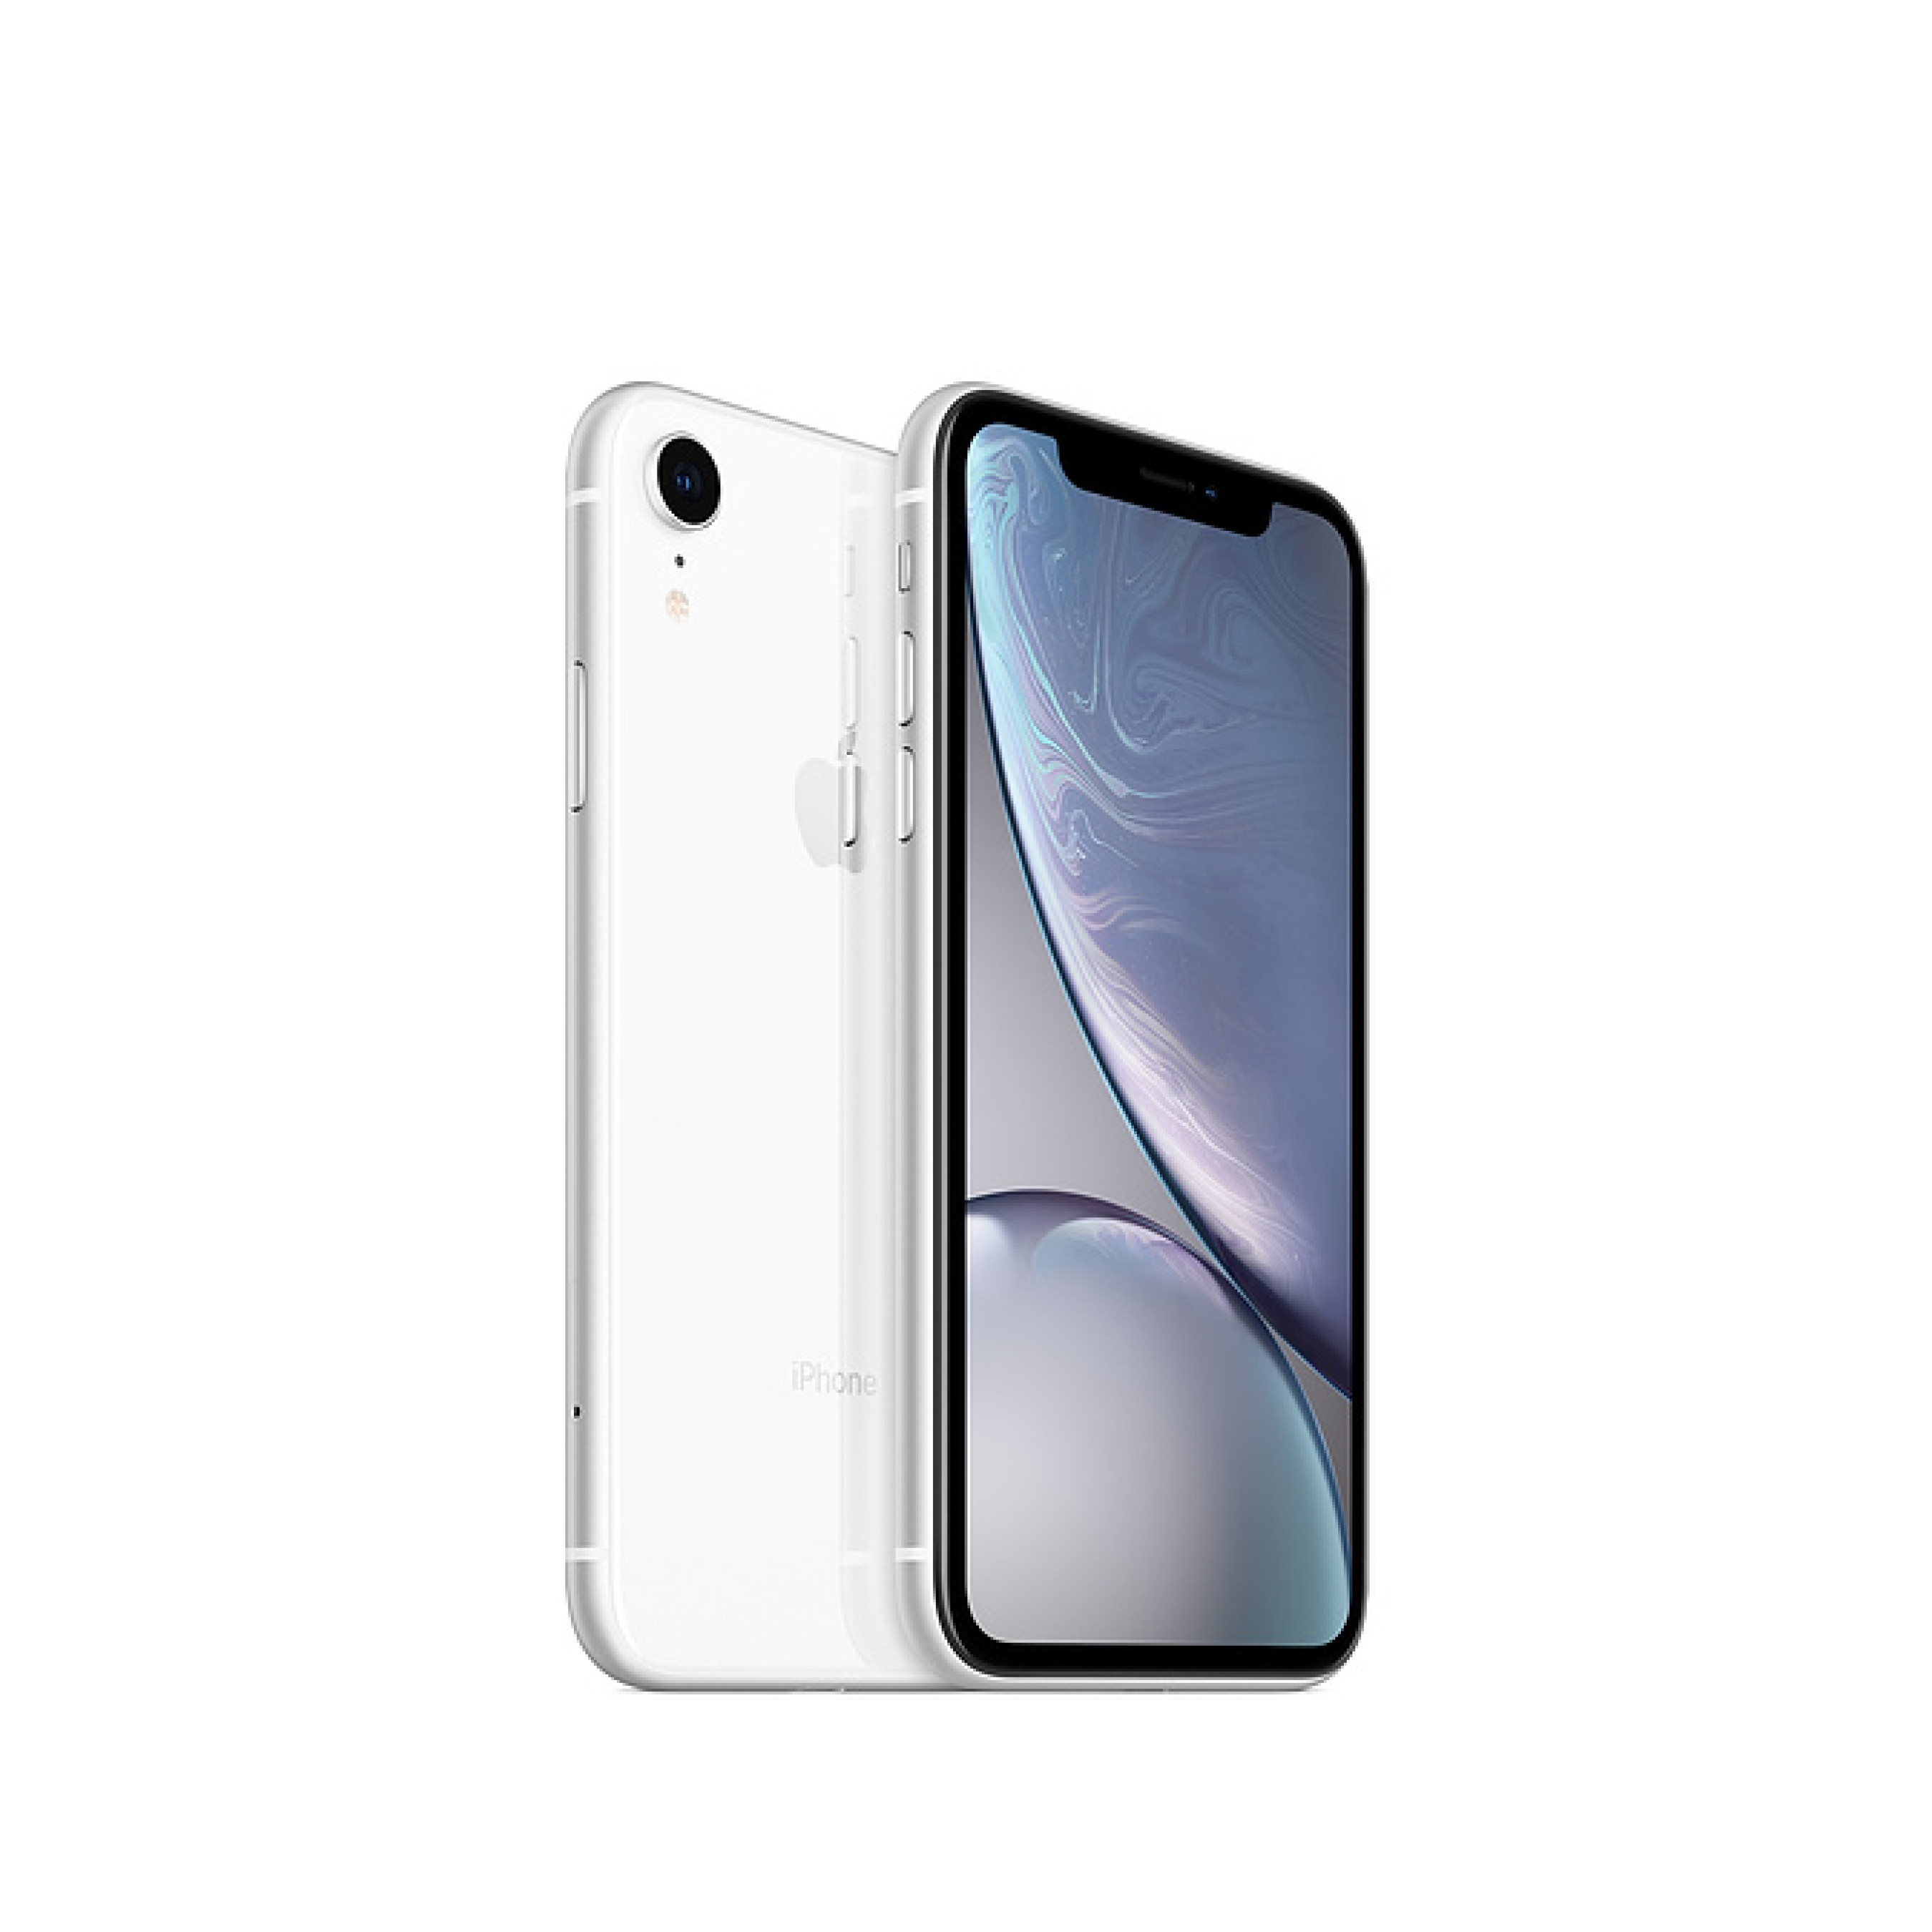 Apple iPhone Xr 64Gb - White eSIM TAM